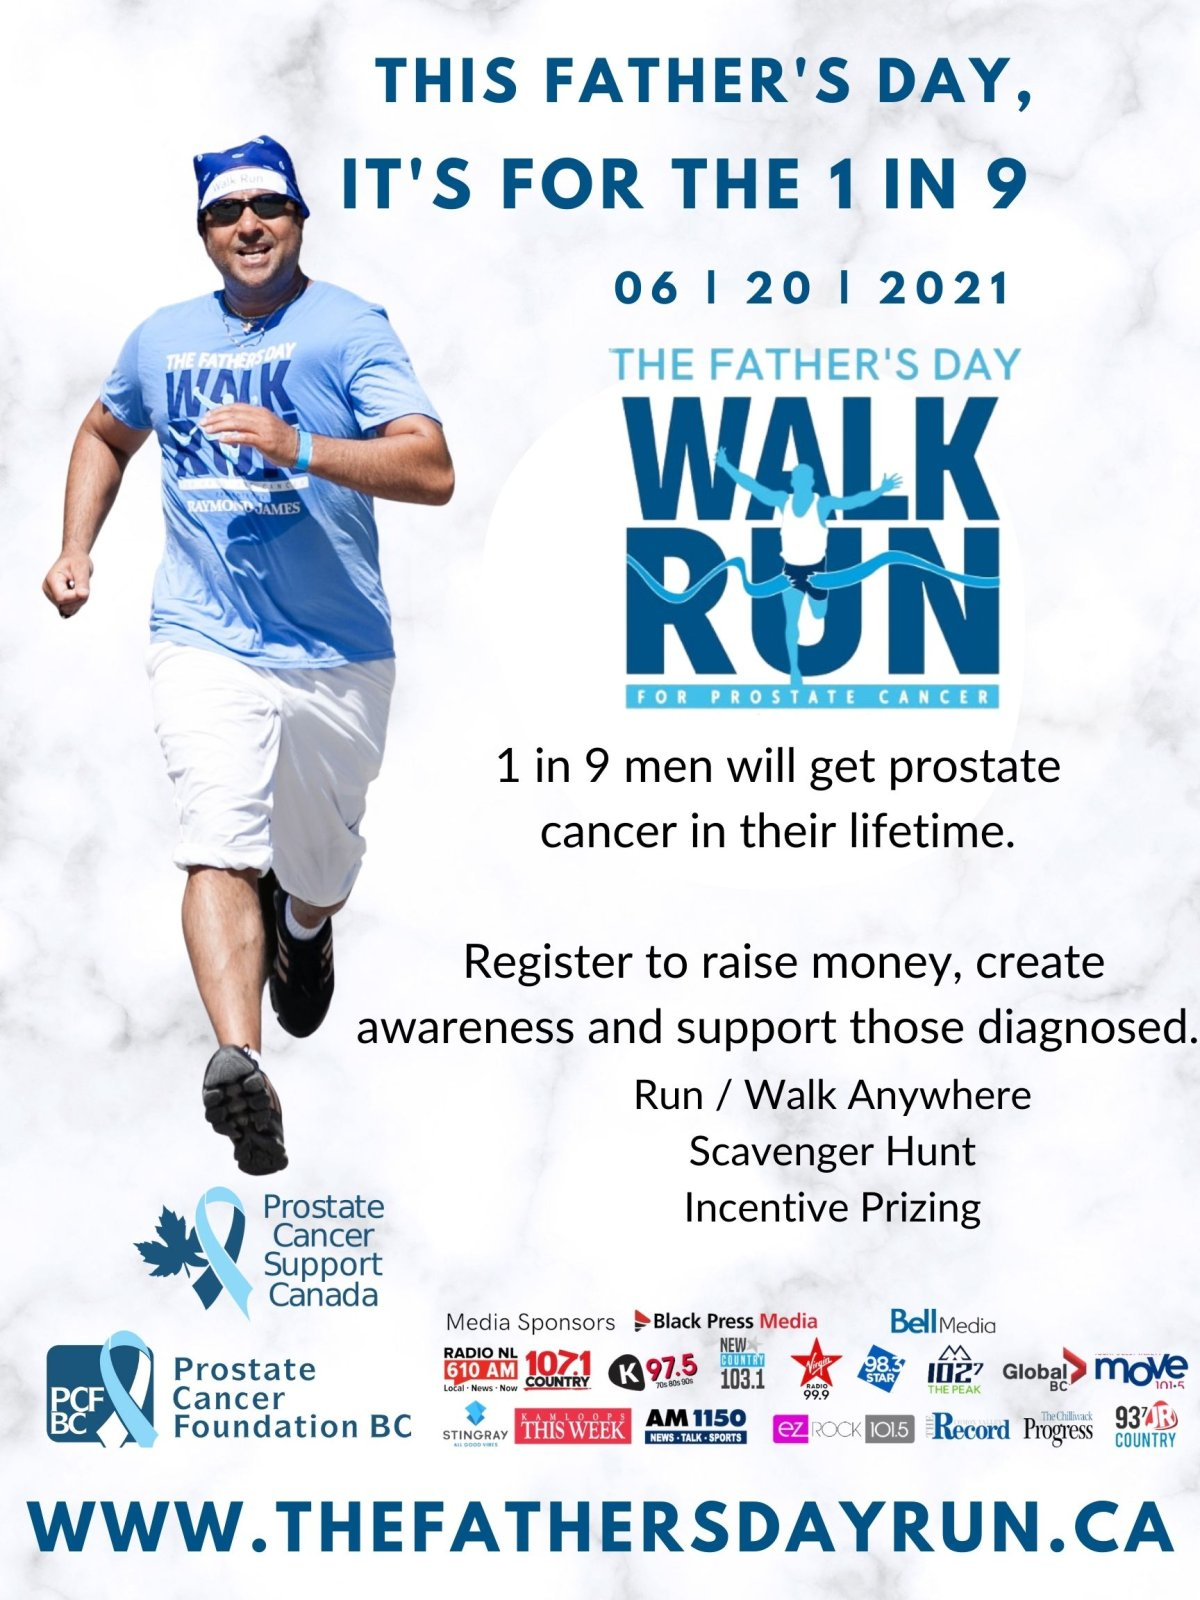 June 20th marks the 23rd Annual walk / run for prostate cancer. This signature event is one of Prostate Cancer Foundation BC (PCFBC) largest fundraisers which allows us to continue to promote awareness, assist support groups and support research across Canada. 1 in 9 Canadian men will be diagnosed with prostate cancer in their lifetime. You can be anywhere and be part of the event as our 2021 event is virtual. We have also added so many other exciting aspects like a scavenger hunt with prizing, incentive prizing and registration prizing. Check out the event website for all the information. www.thefathersdayrun.ca.